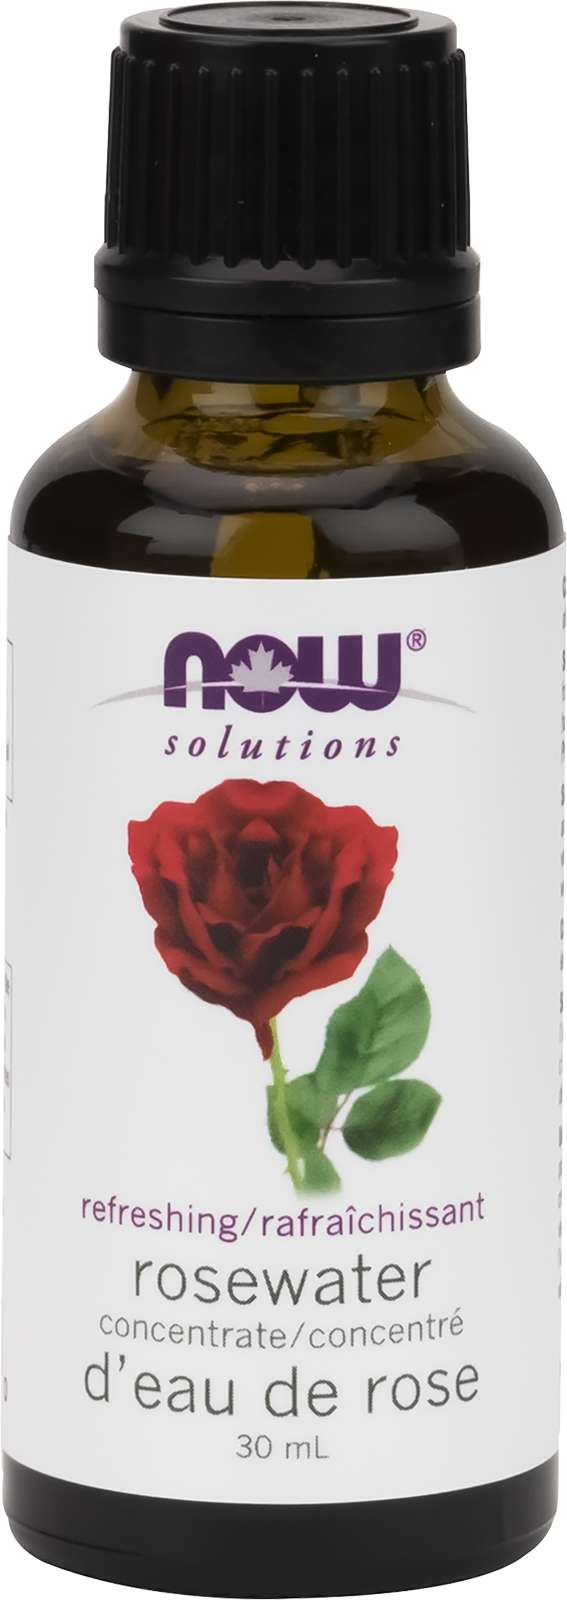 Rosewater Concentrate 30mL